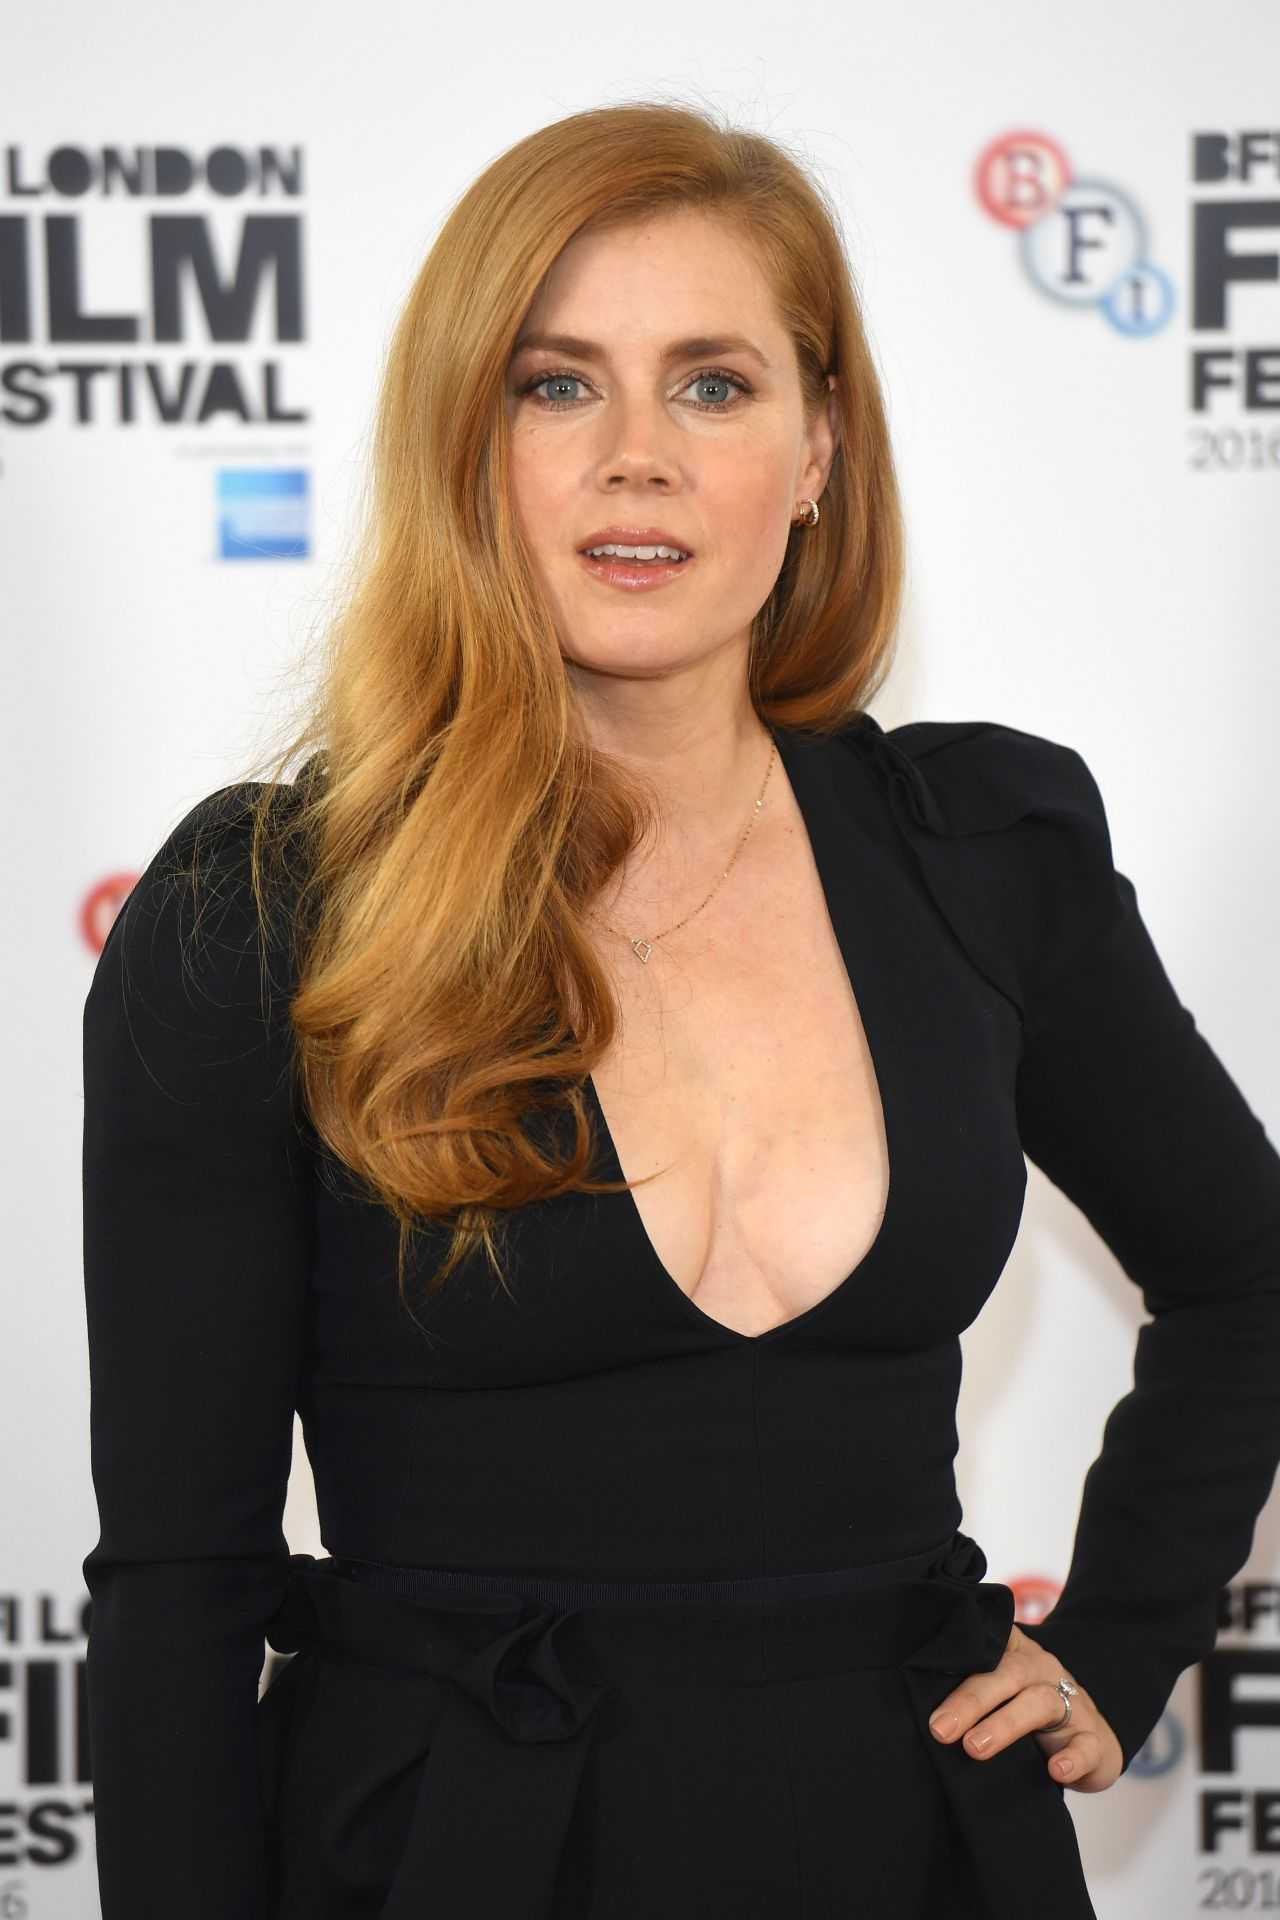 Amy Adams 60th London Film Festival Arrival Photocall 10